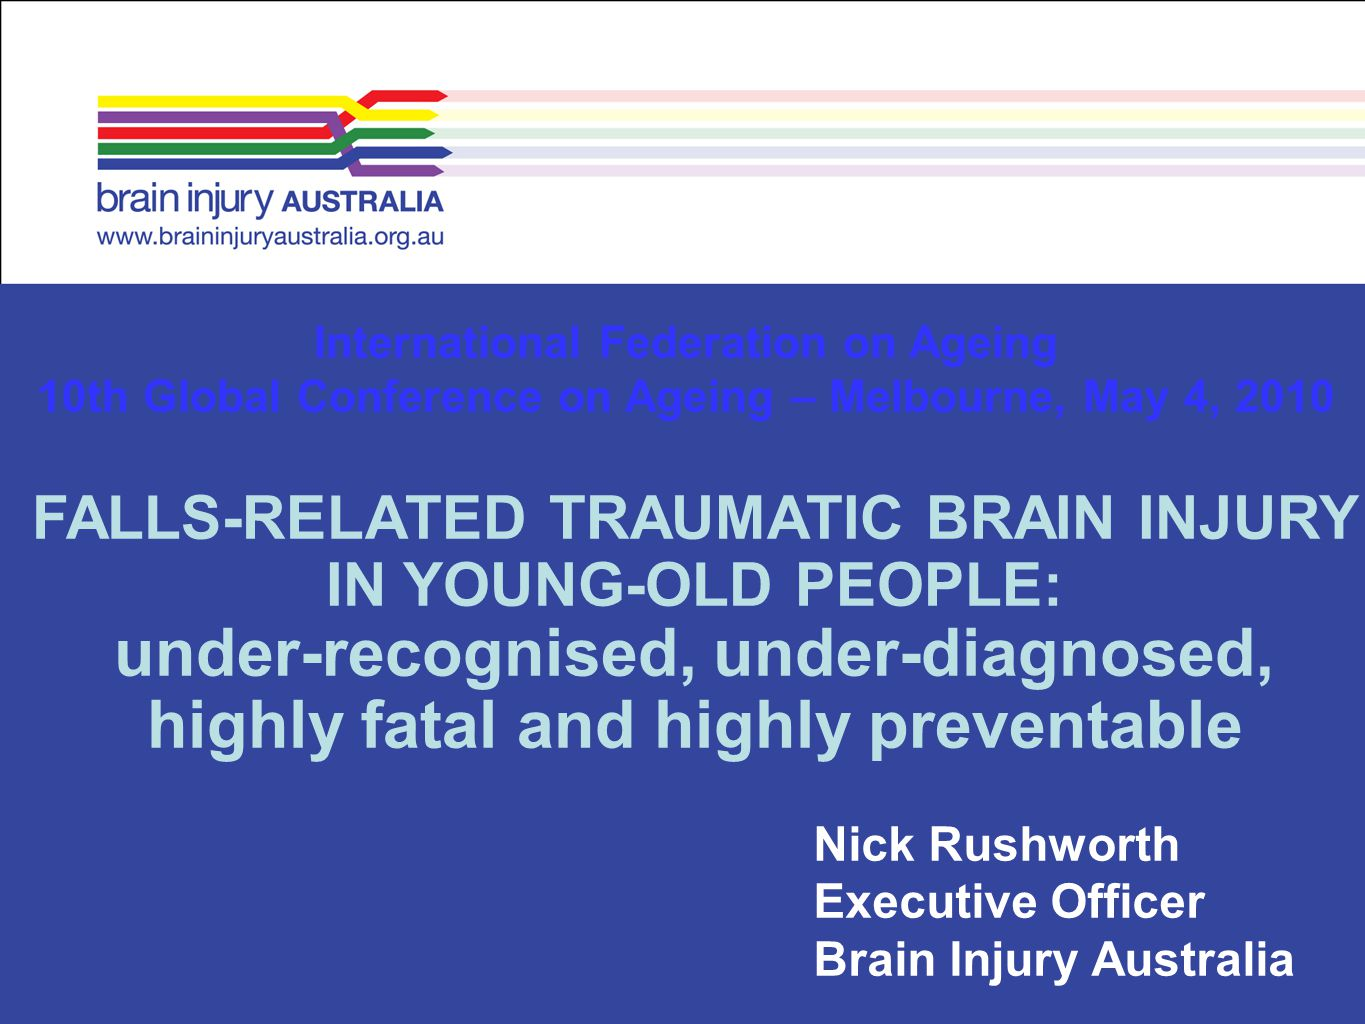 Nick Rushworth Executive Officer Brain Injury Australia International Federation on Ageing 10th Global Conference on Ageing – Melbourne, May 4, 2010 F